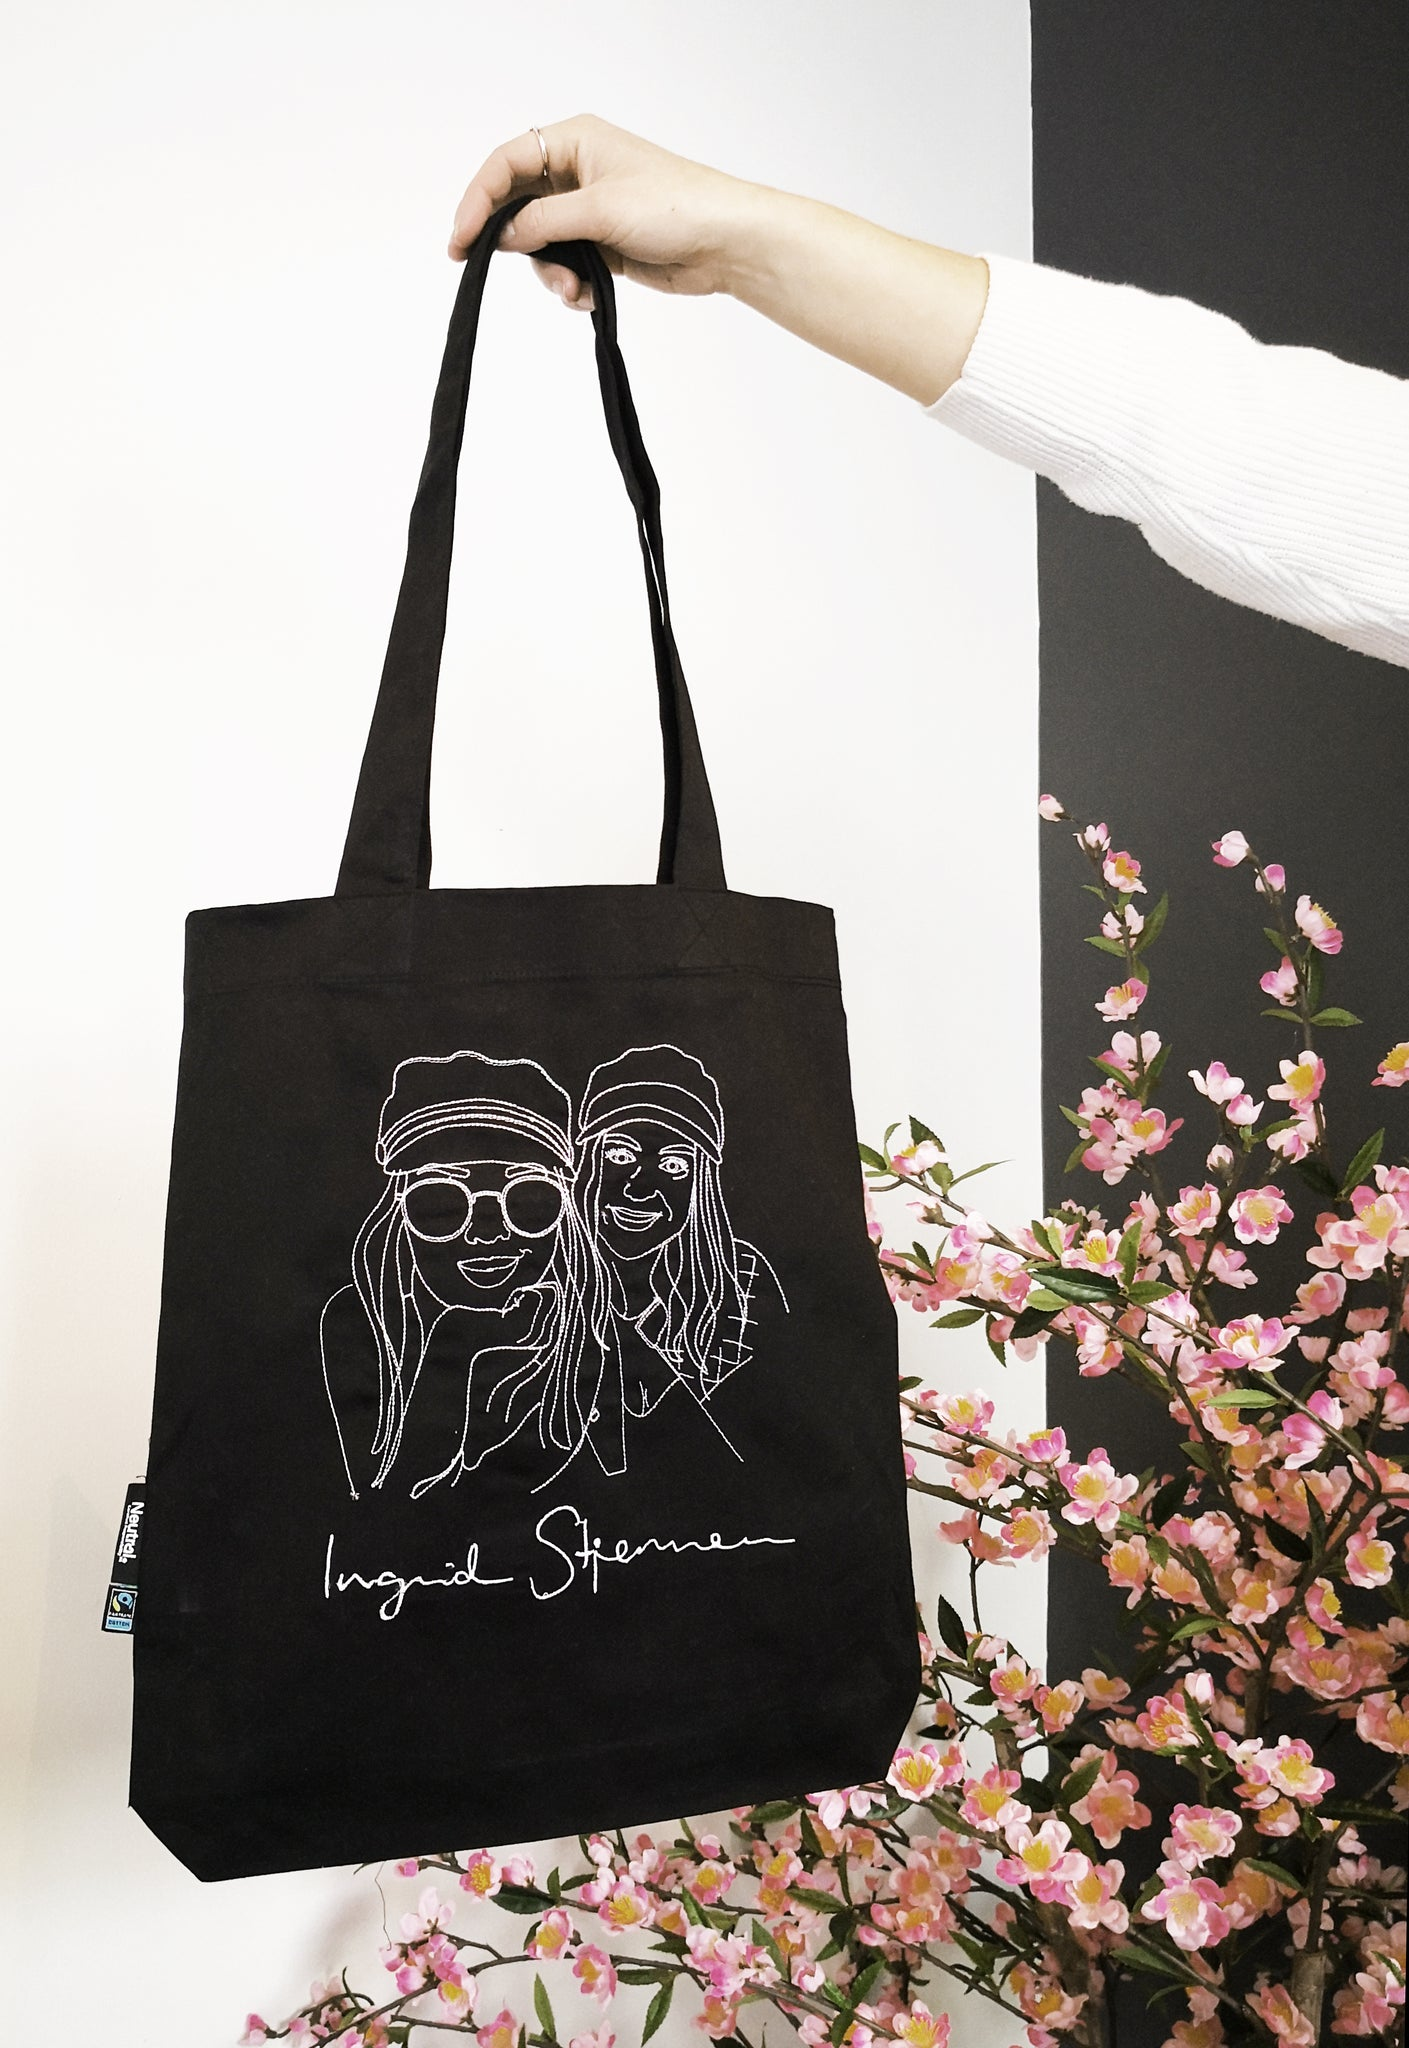 Customised Unbranded Tote Bag